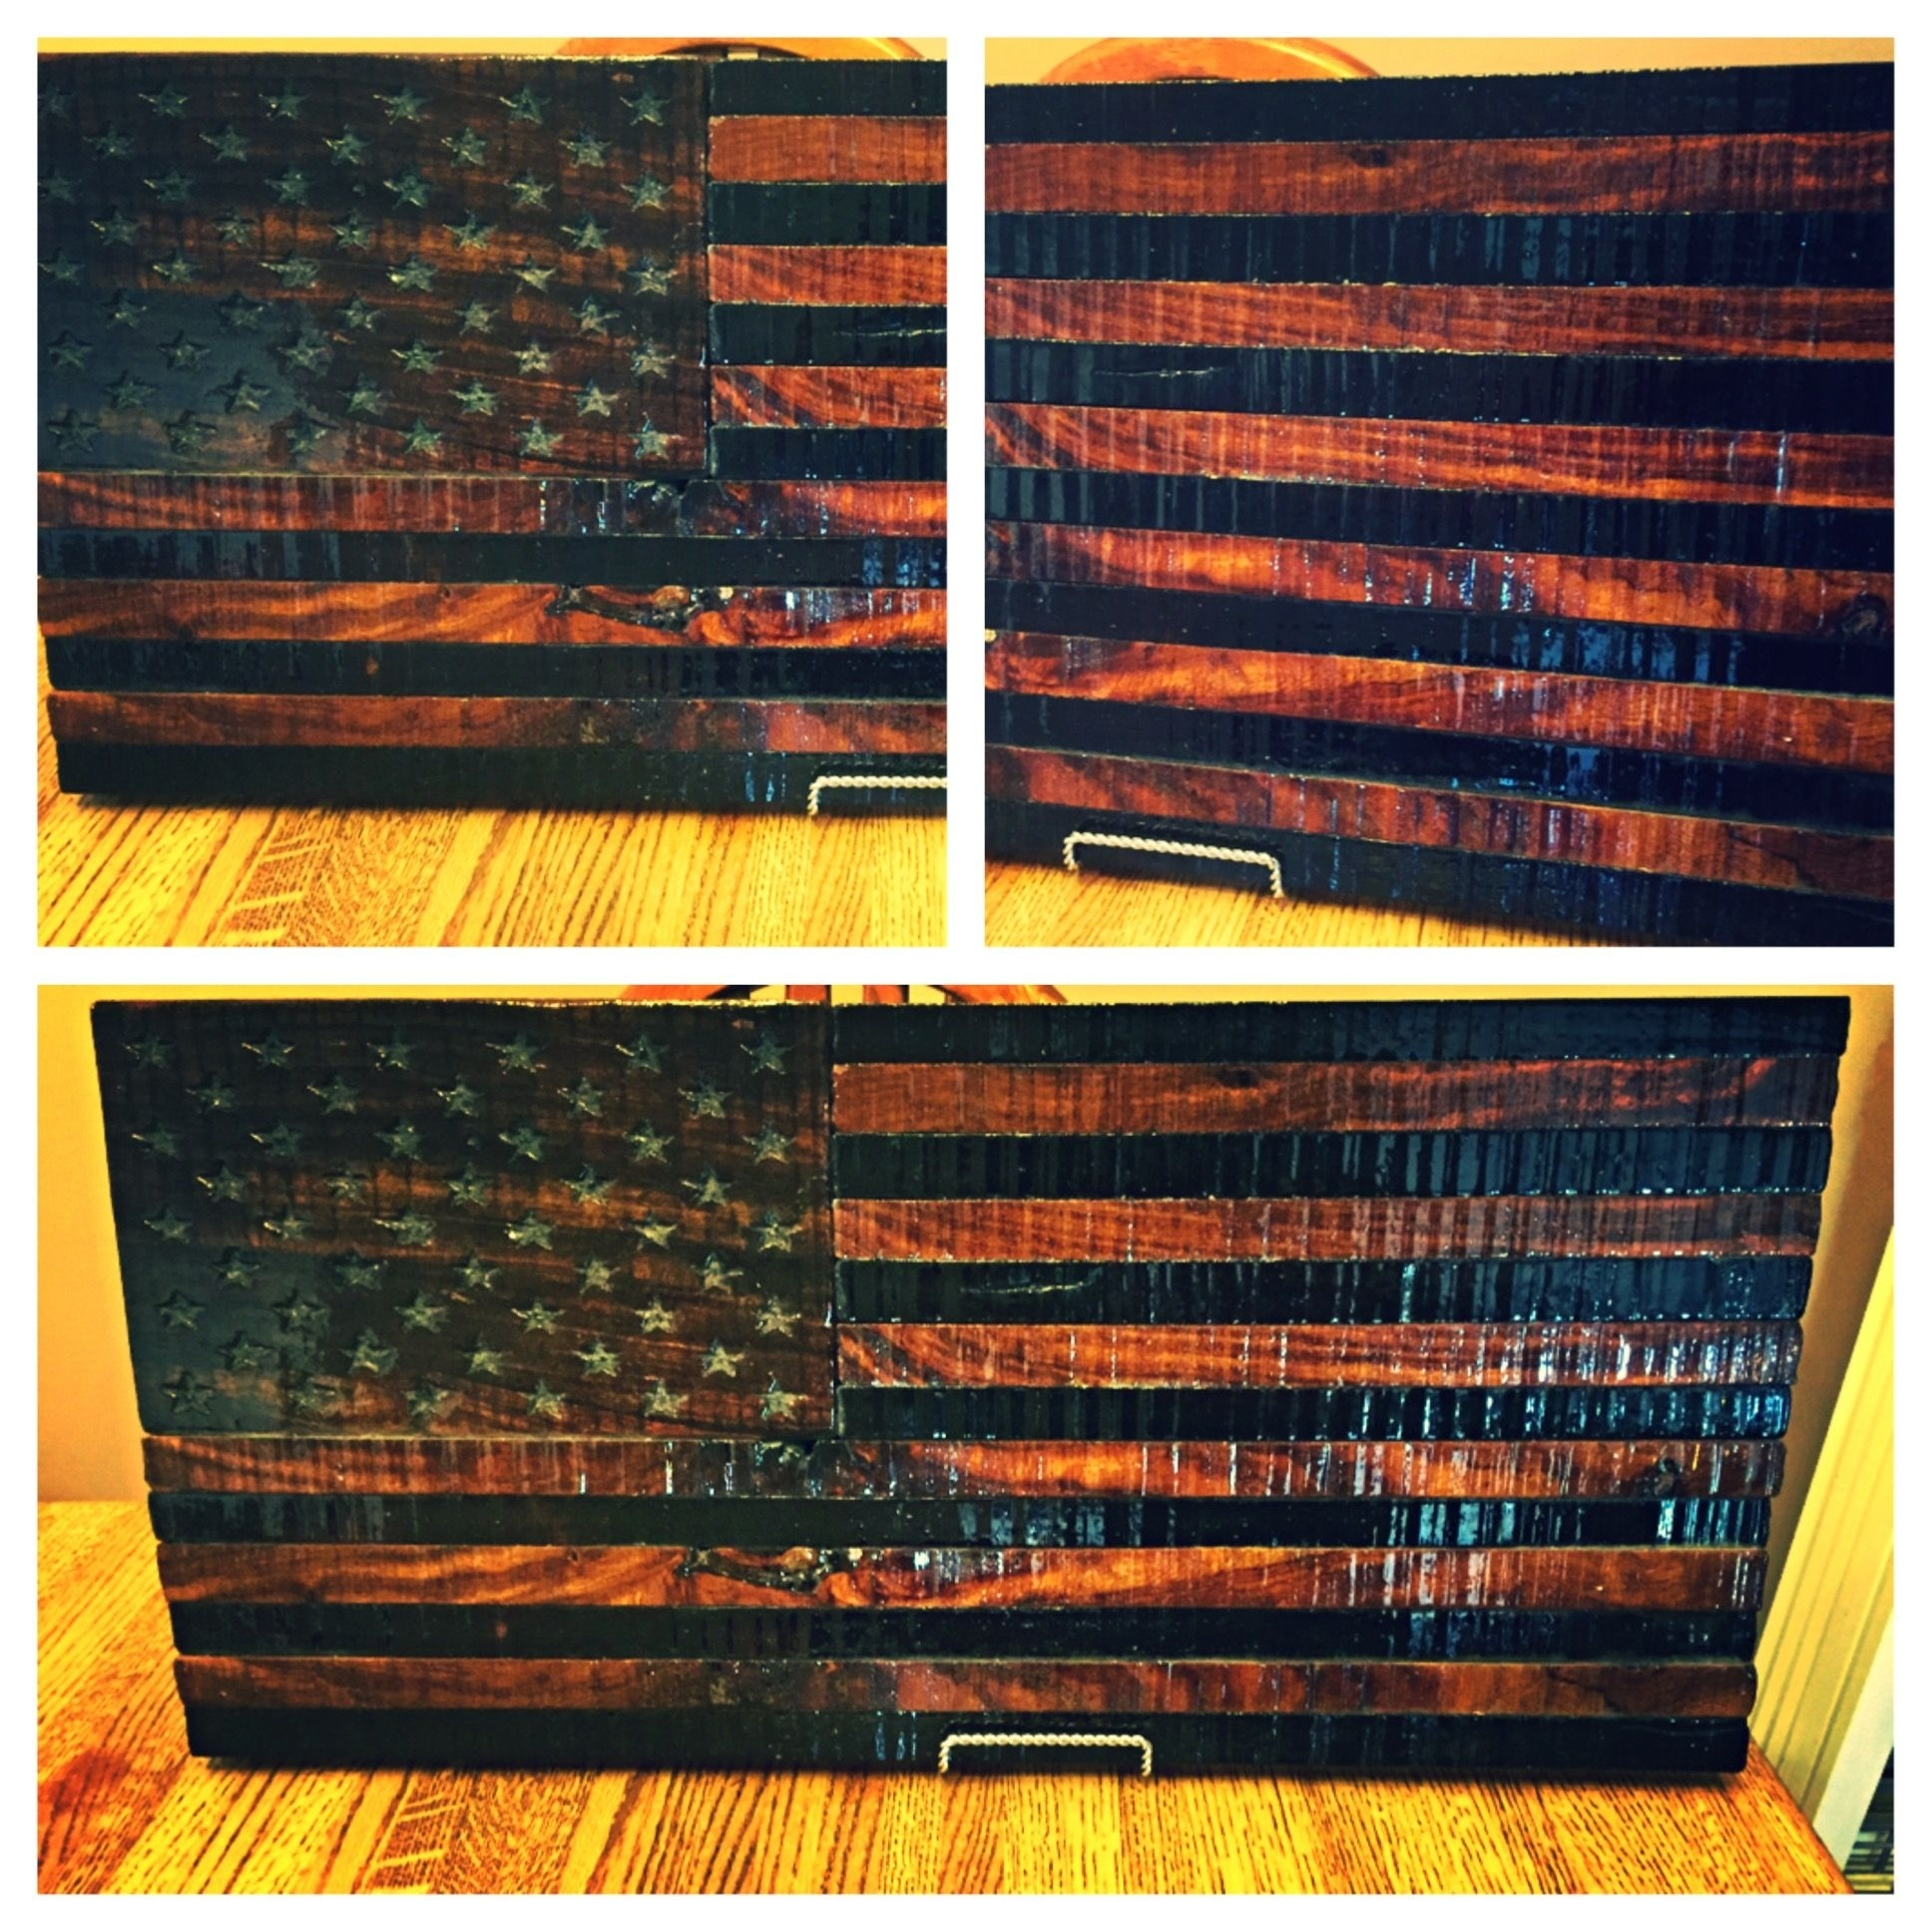 Custom Rustic Wooden American Flagtorched Metal Works Regarding Most Up To Date Rustic American Flag Wall Art (View 7 of 20)